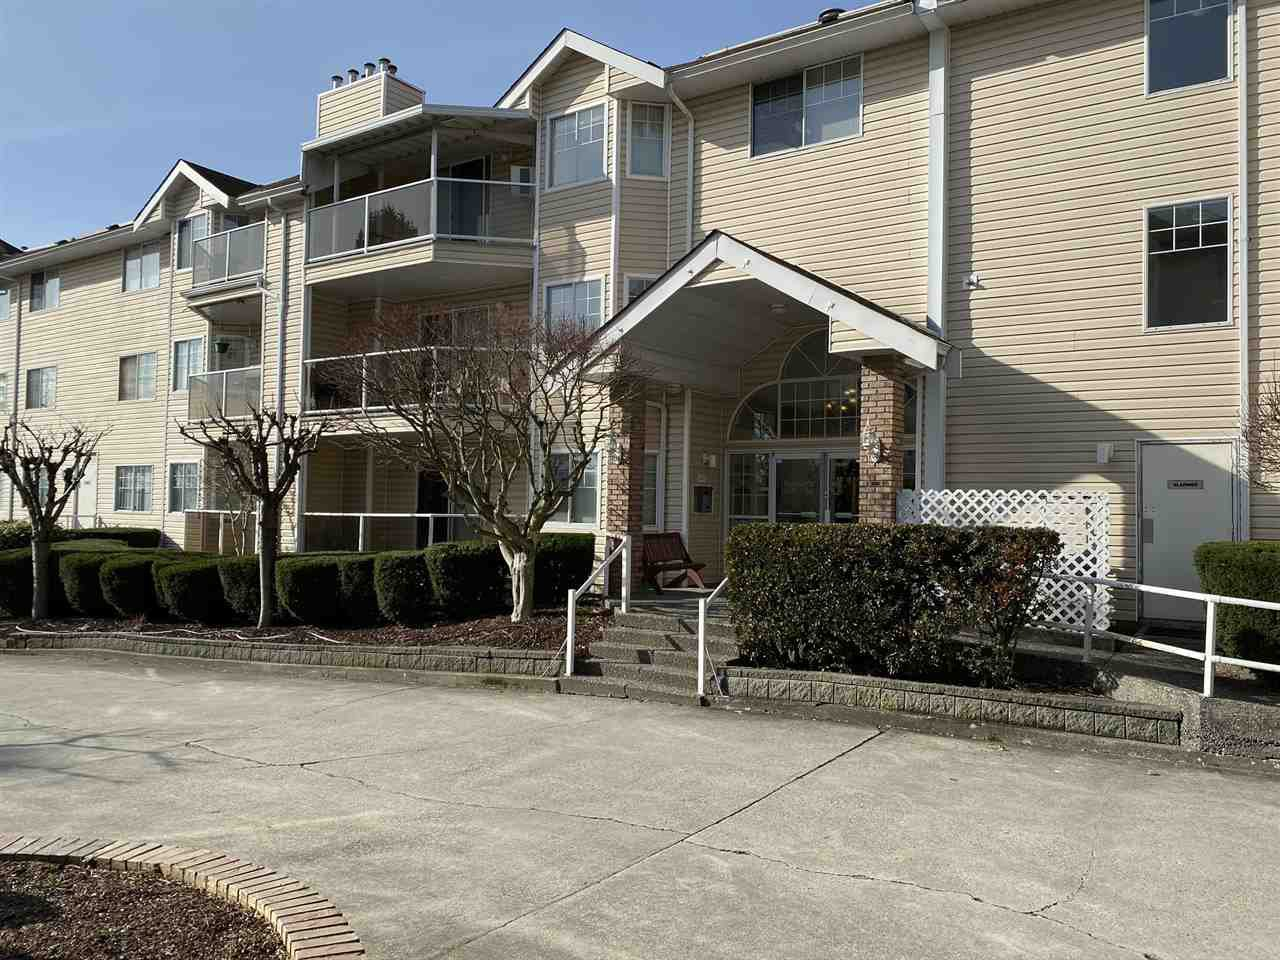 """Main Photo: 120 22611 116 Avenue in Maple Ridge: East Central Condo for sale in """"ROSEWOOD COURT"""" : MLS®# R2433176"""